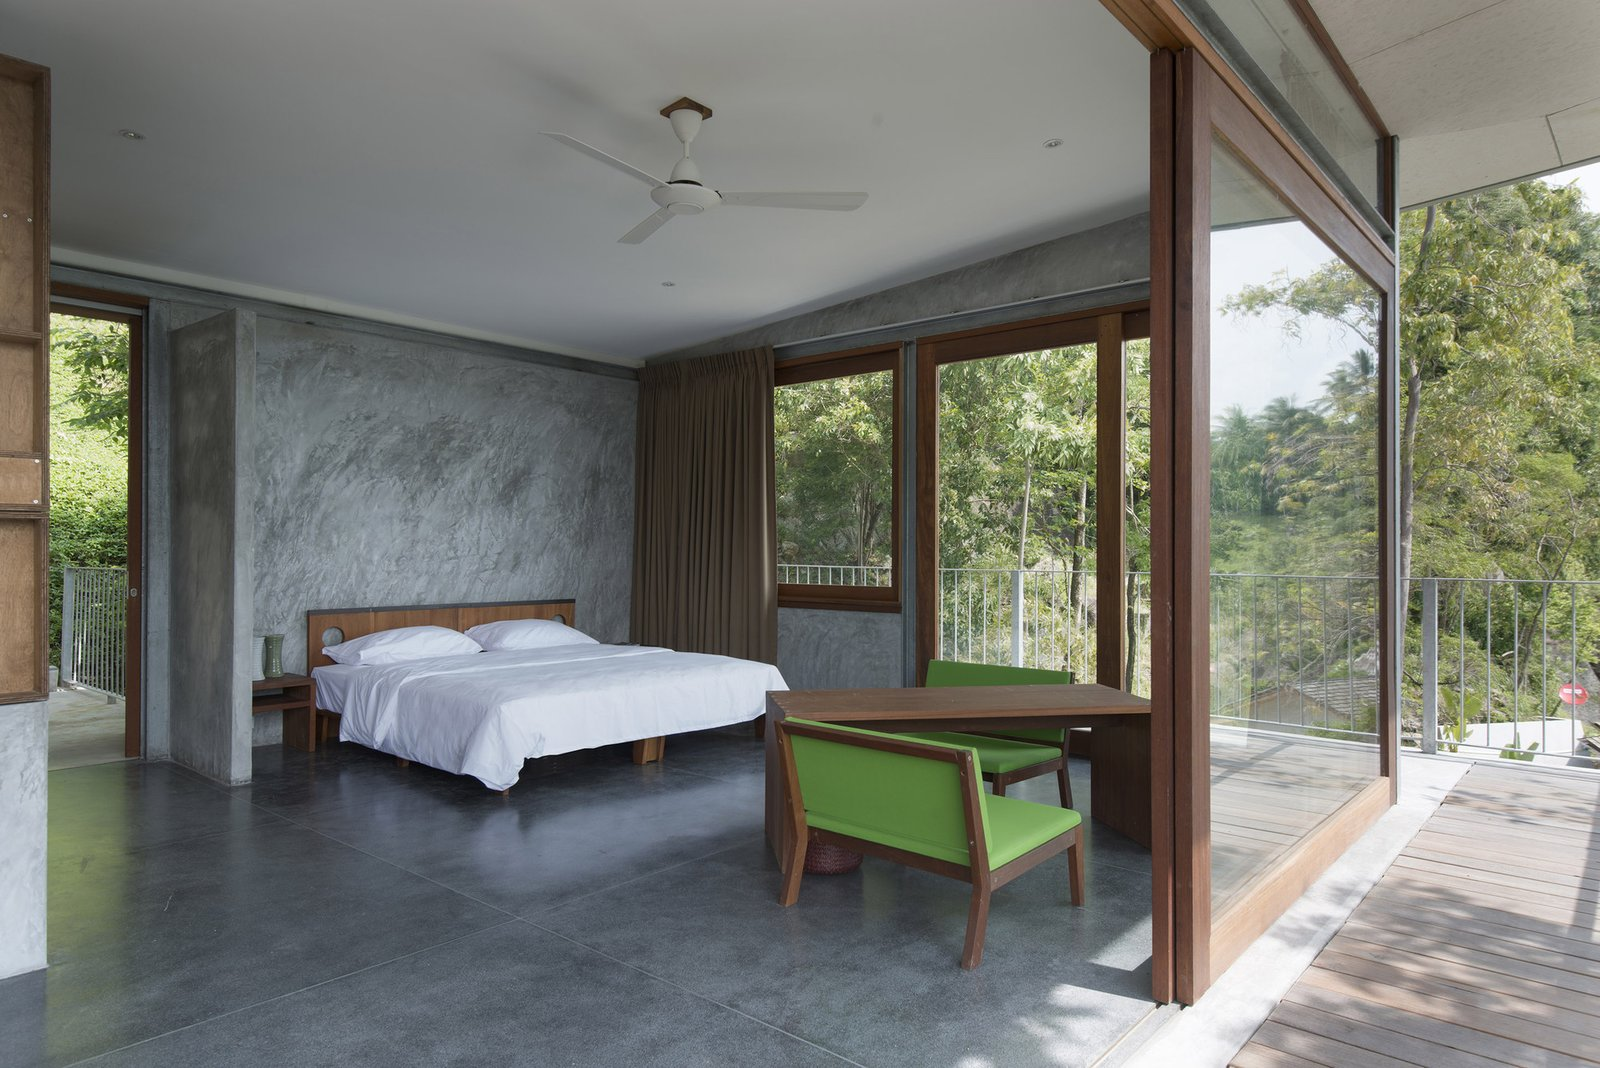 Tagged: Trees, Side Yard, Sofa, Chair, Metal Fences, Wall, Cooktops, Bedroom, Concrete Floor, Night Stands, Recessed Lighting, and Bed.  Photo 8 of 11 in Take a Trip to This Photographer-Designed Concrete Home in Thailand